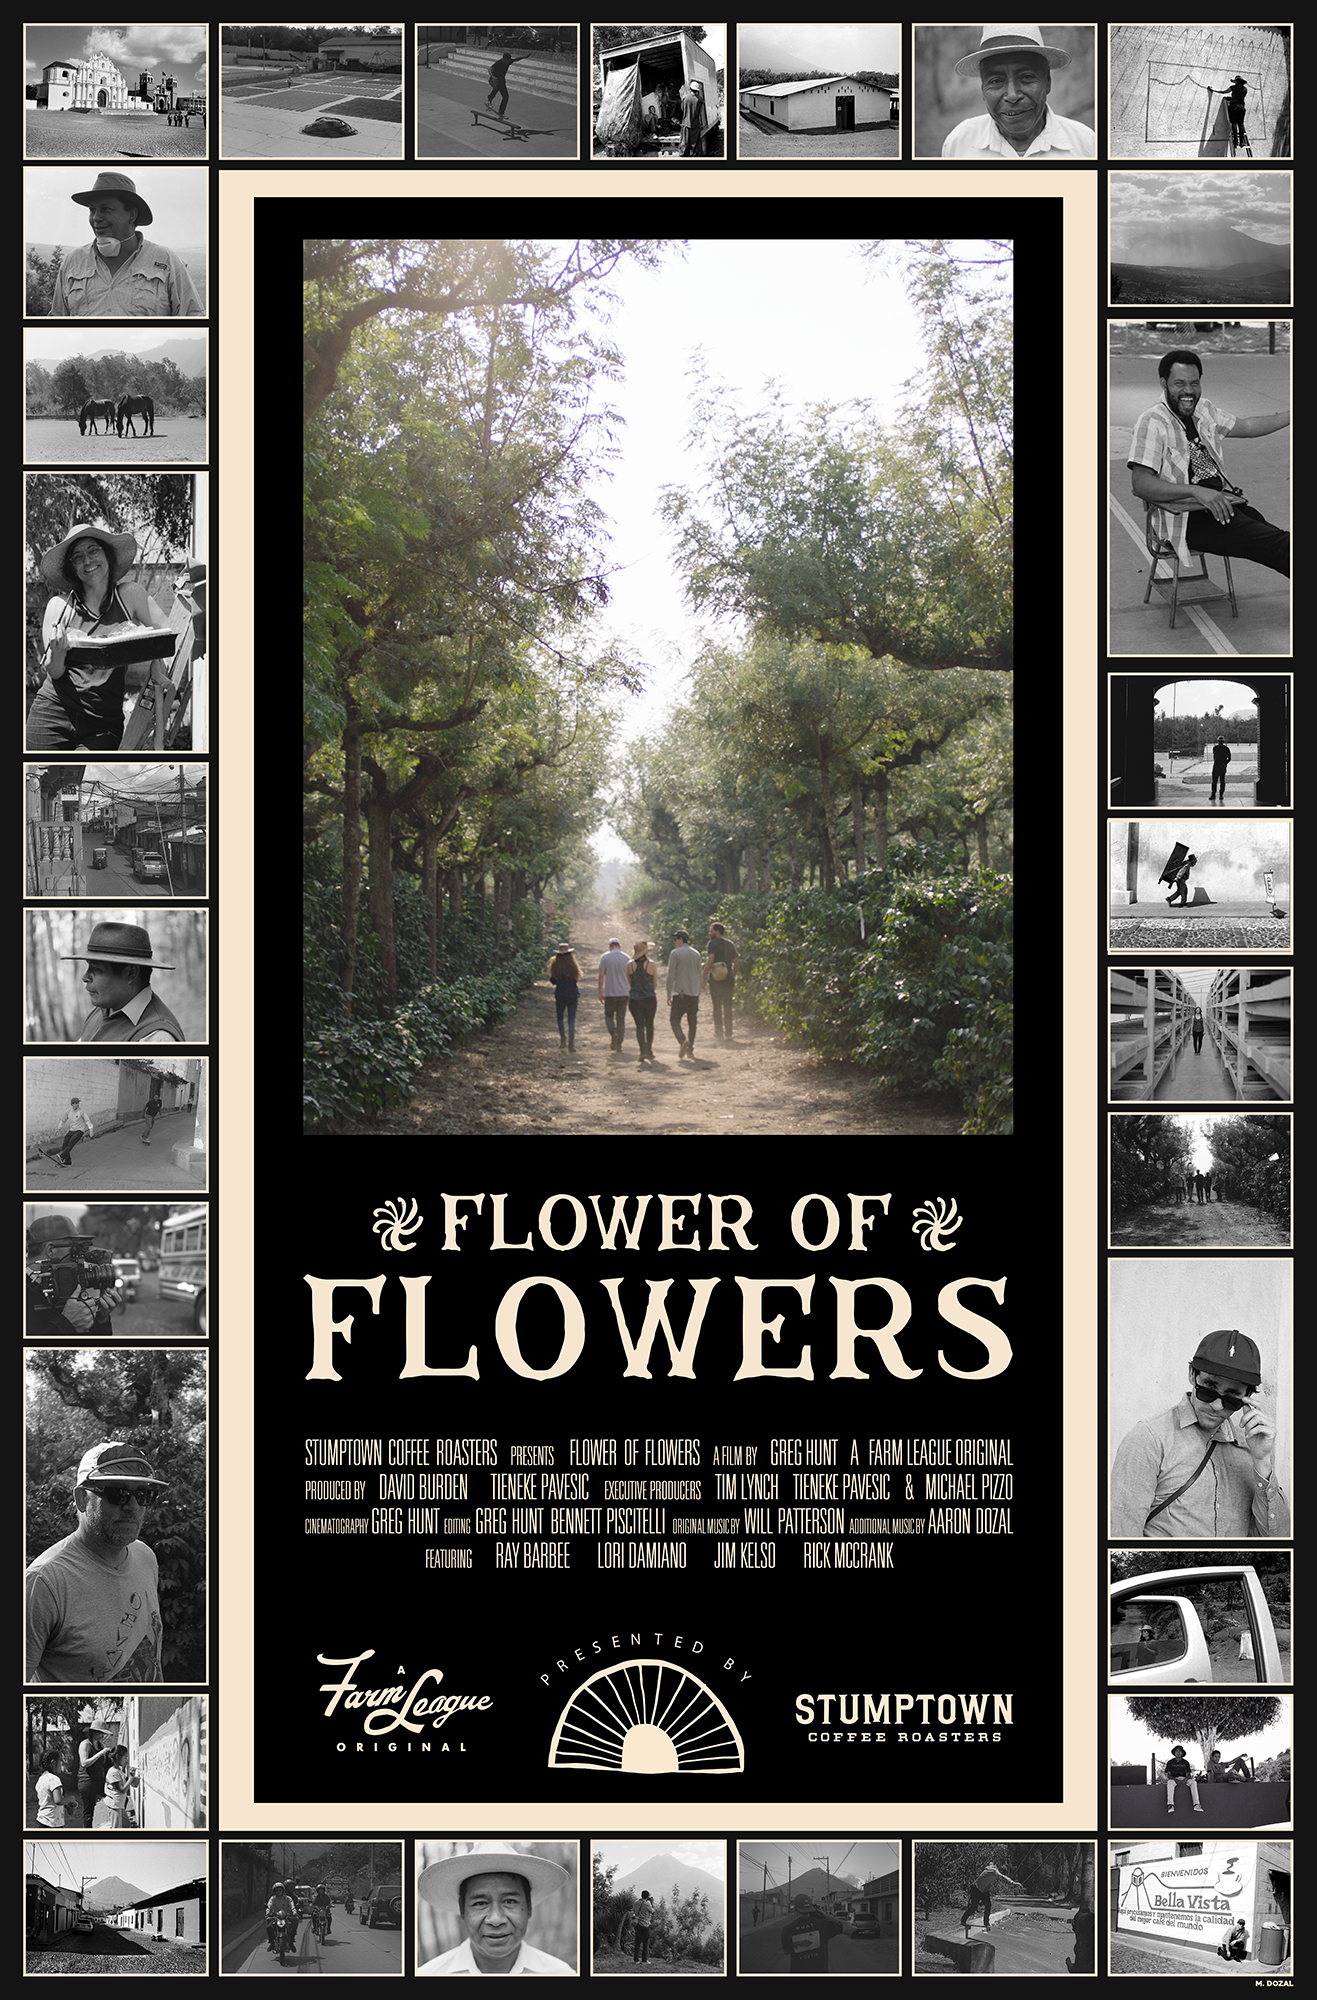 Flower of Flowers poster design by Michael Dozal